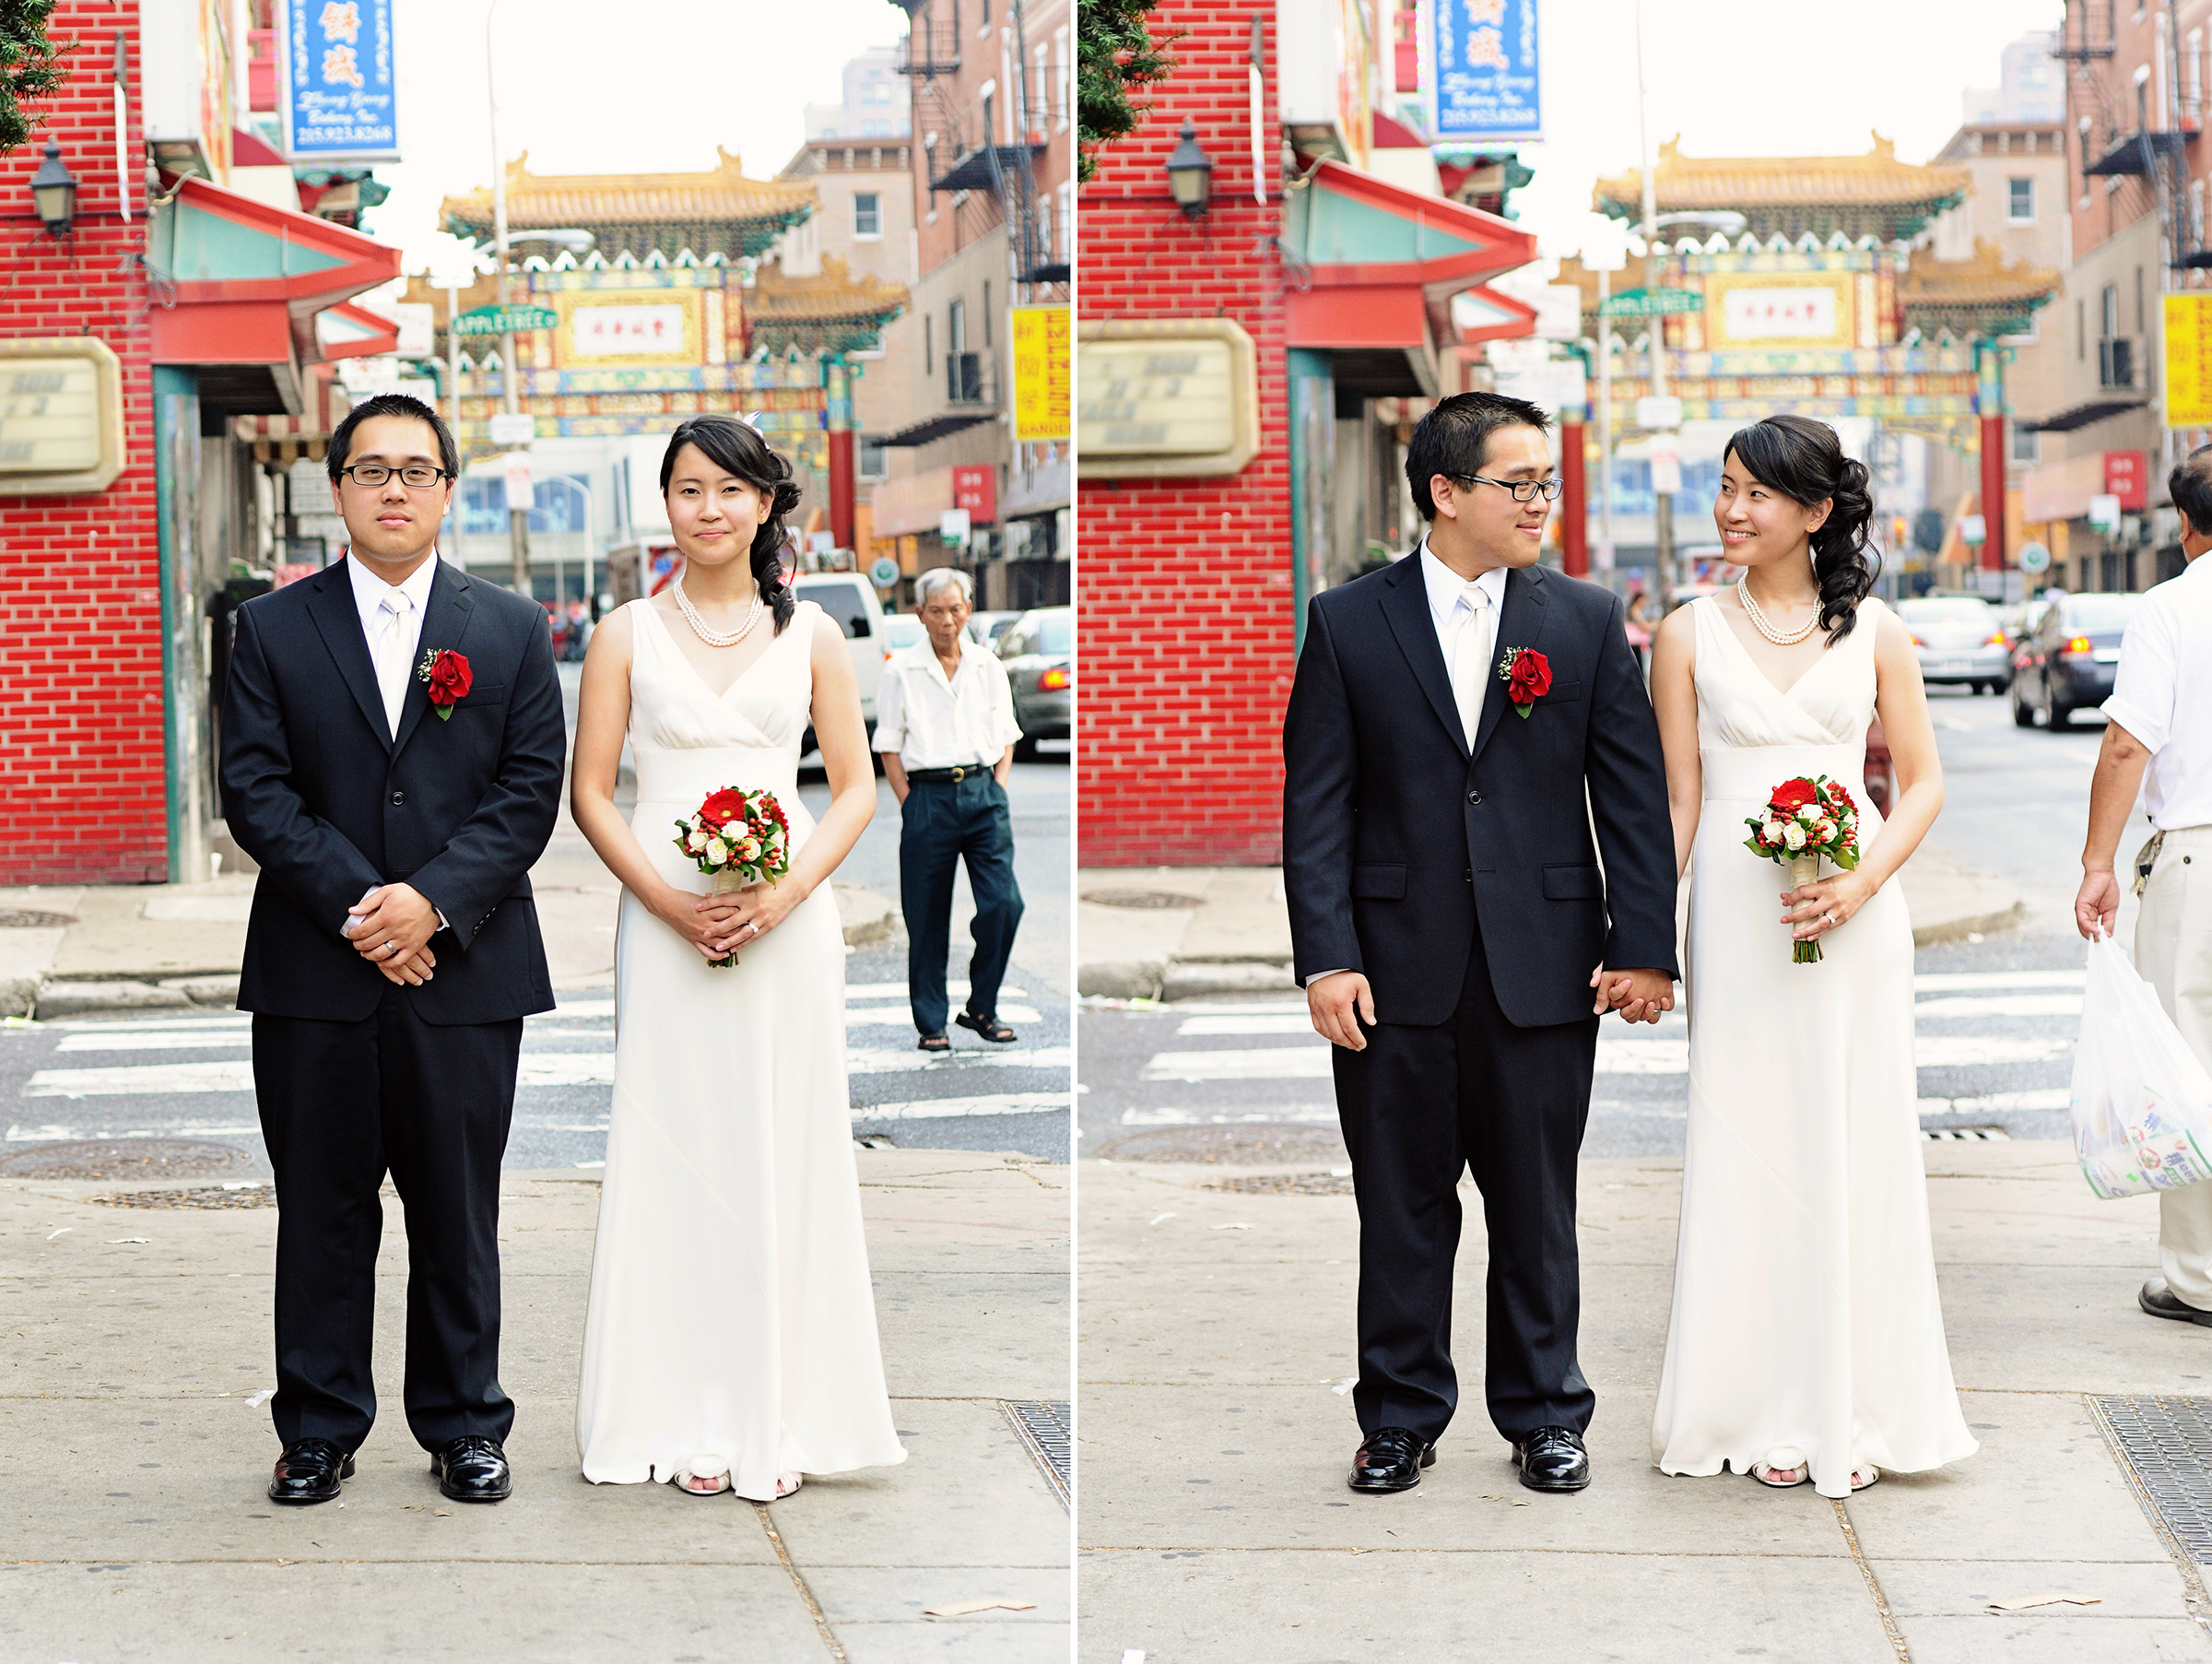 Yin and Hung's traditional wedding brought together Vietnamese and Chinese families for a day of authentic ceremonies and receptions in Delaware and Philadelphia. Photos by Hudson-Nichols Photography.